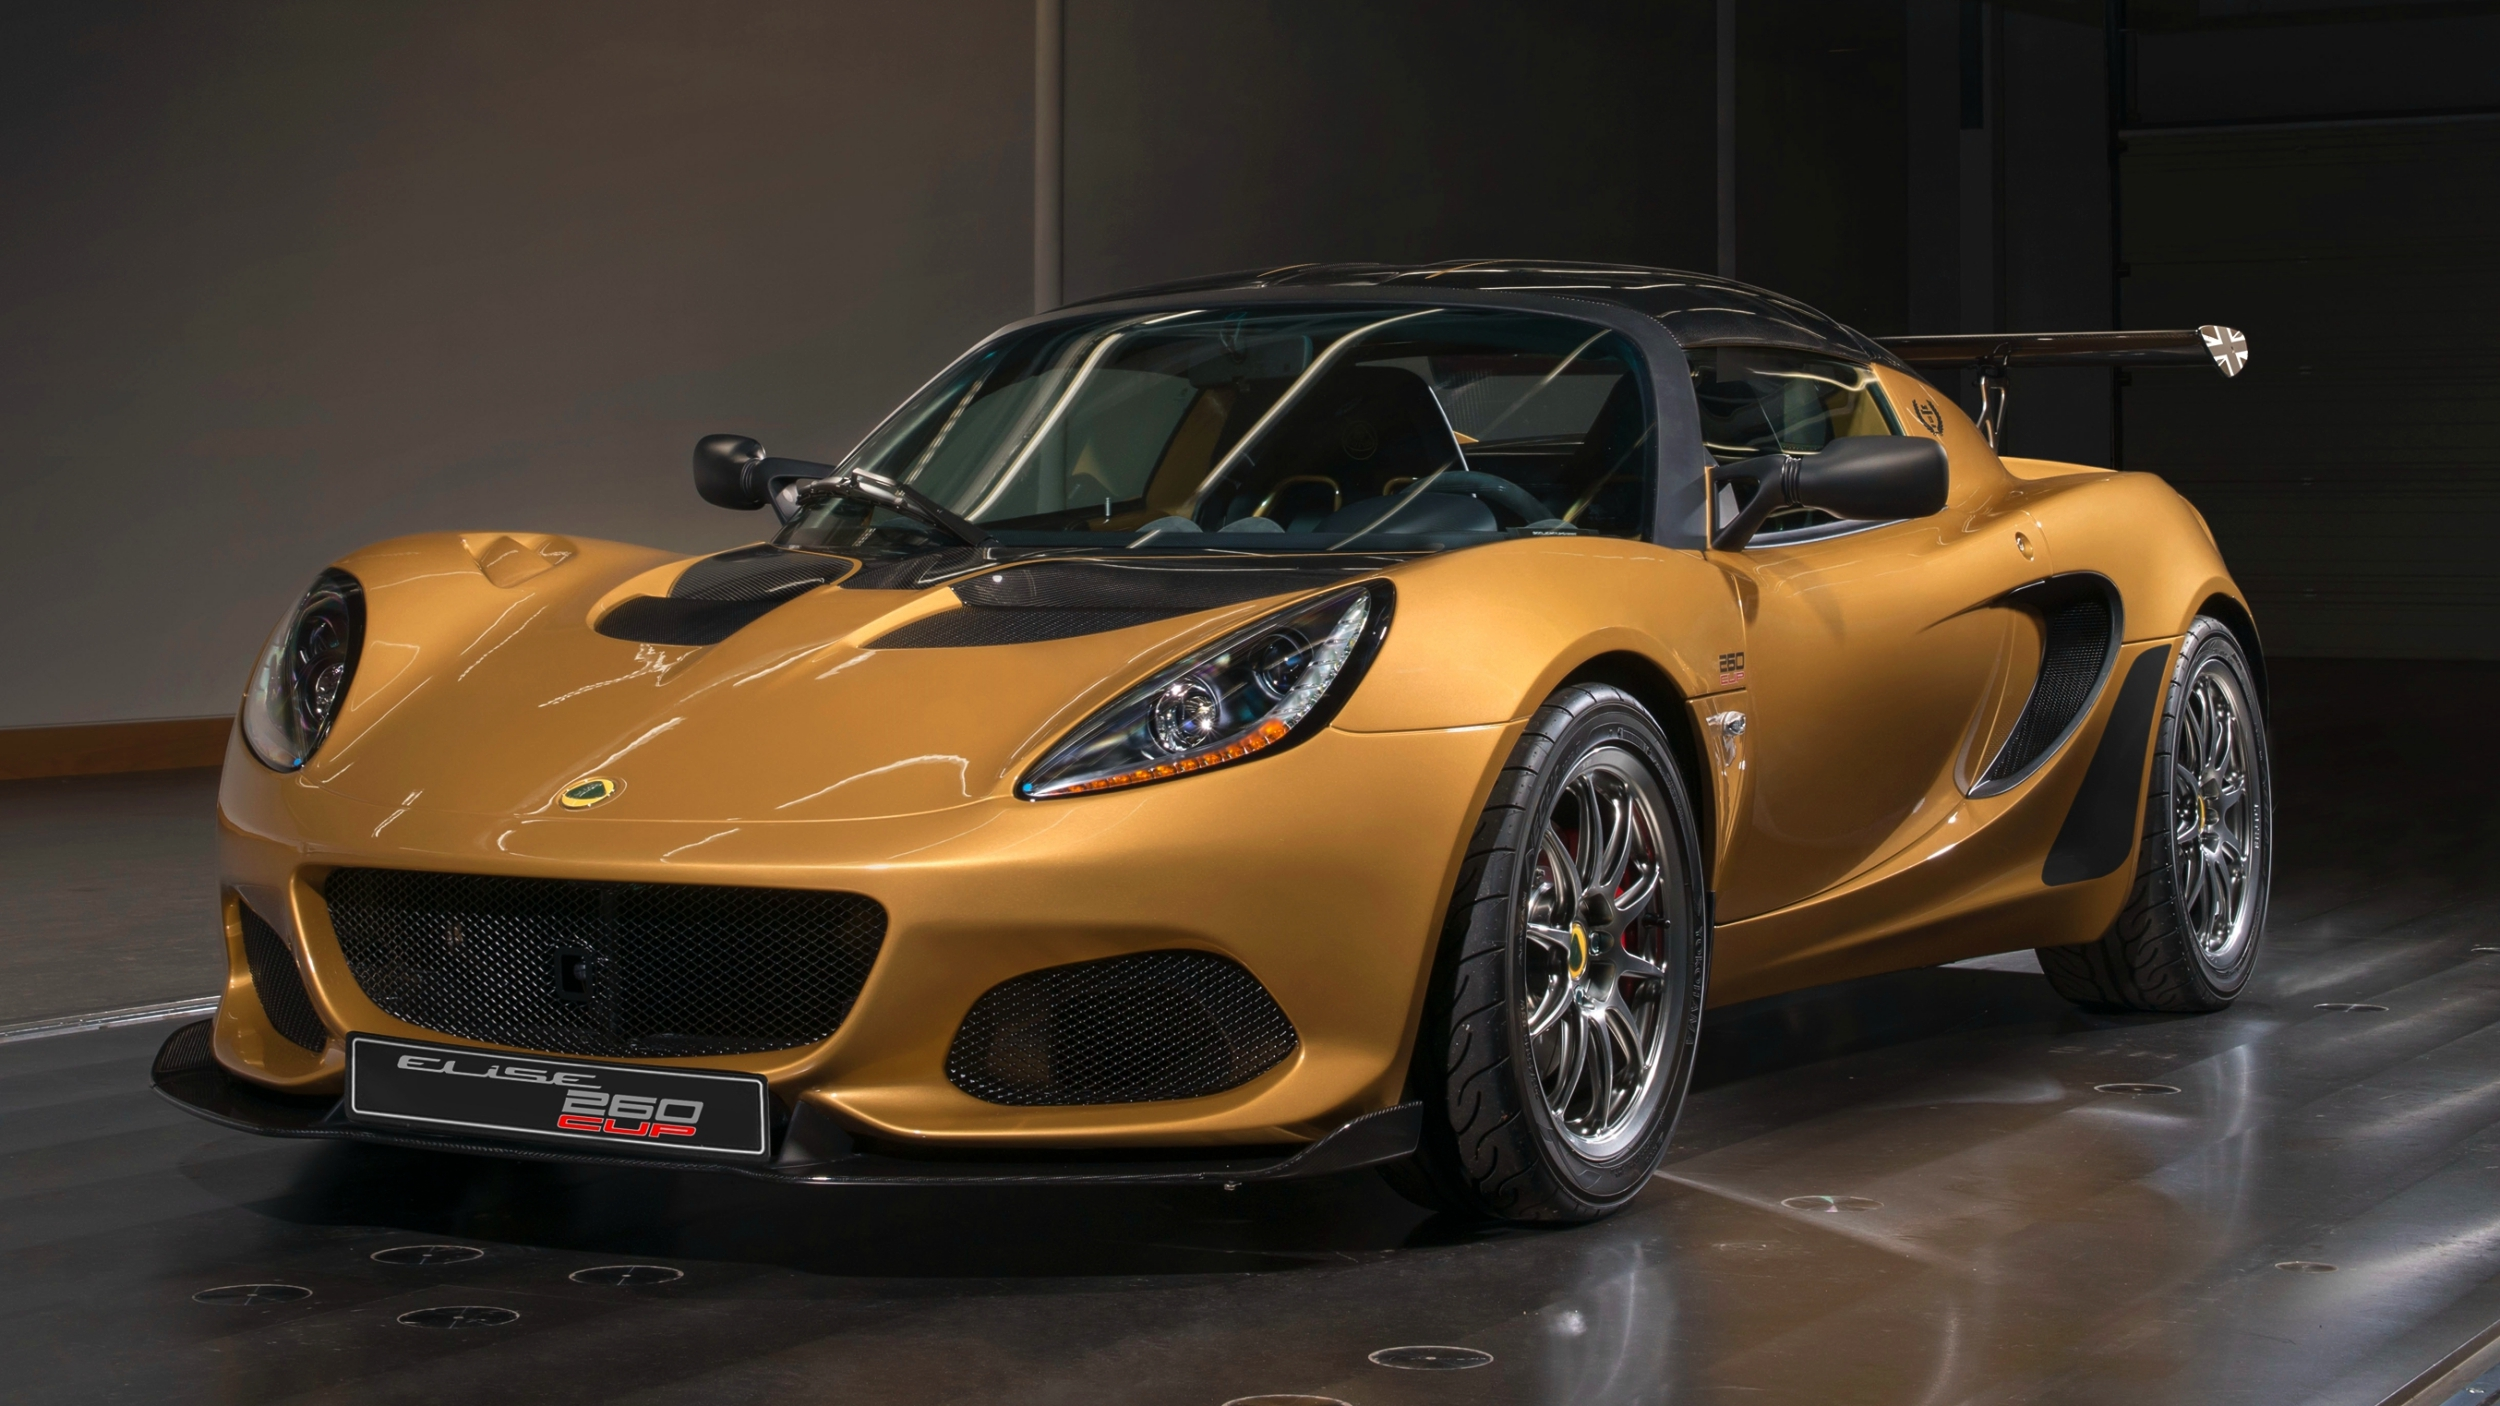 News 2018 Lotus Elise Cup 260 Drops Weight Adds Power